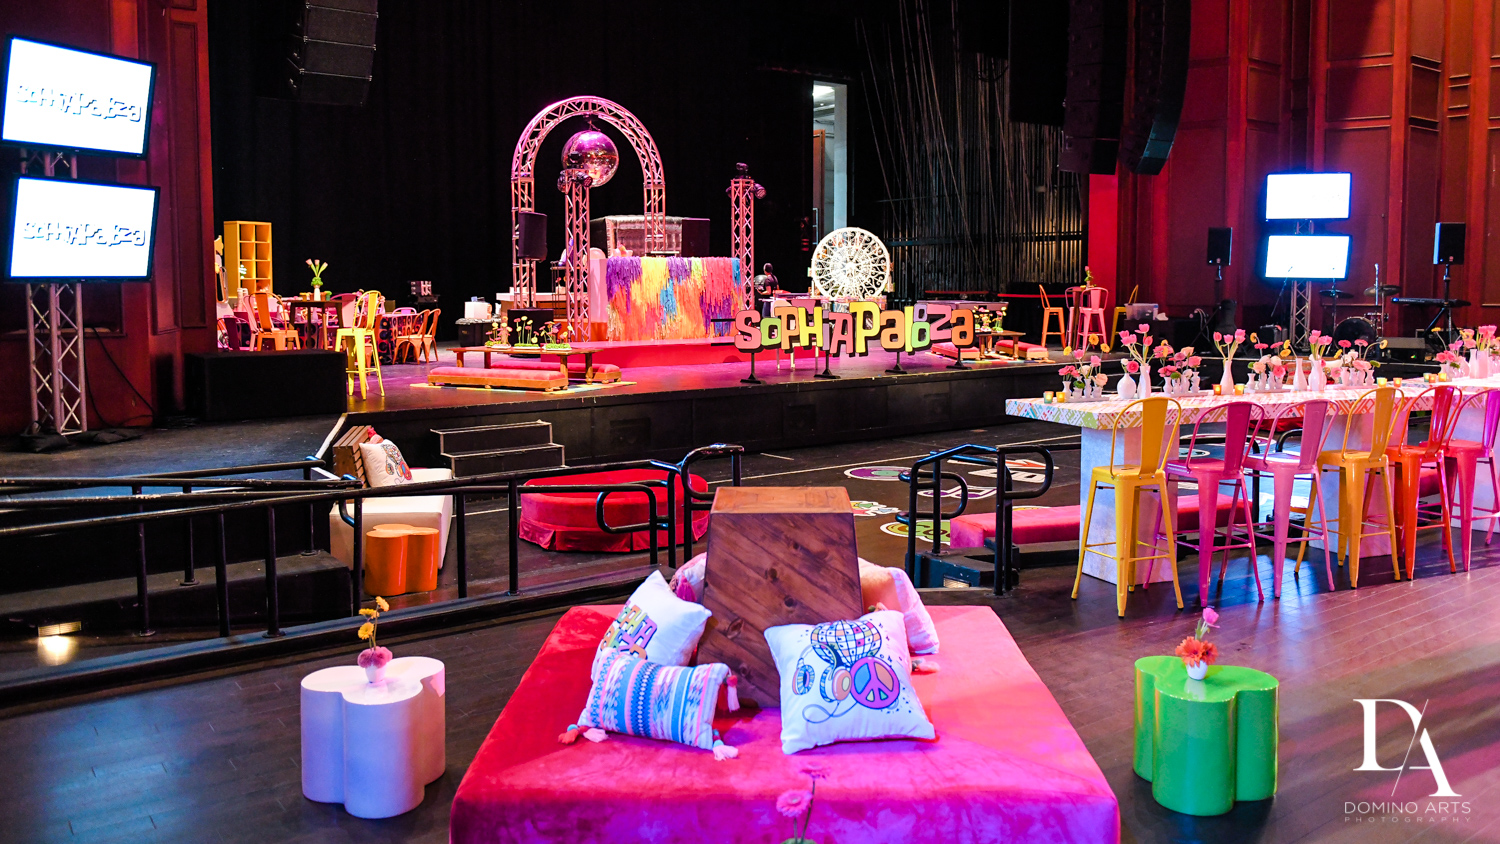 luxury colorful decor at Music Festival Bat Mitzvah at The Fillmore Miami Beach by Domino Arts Photography